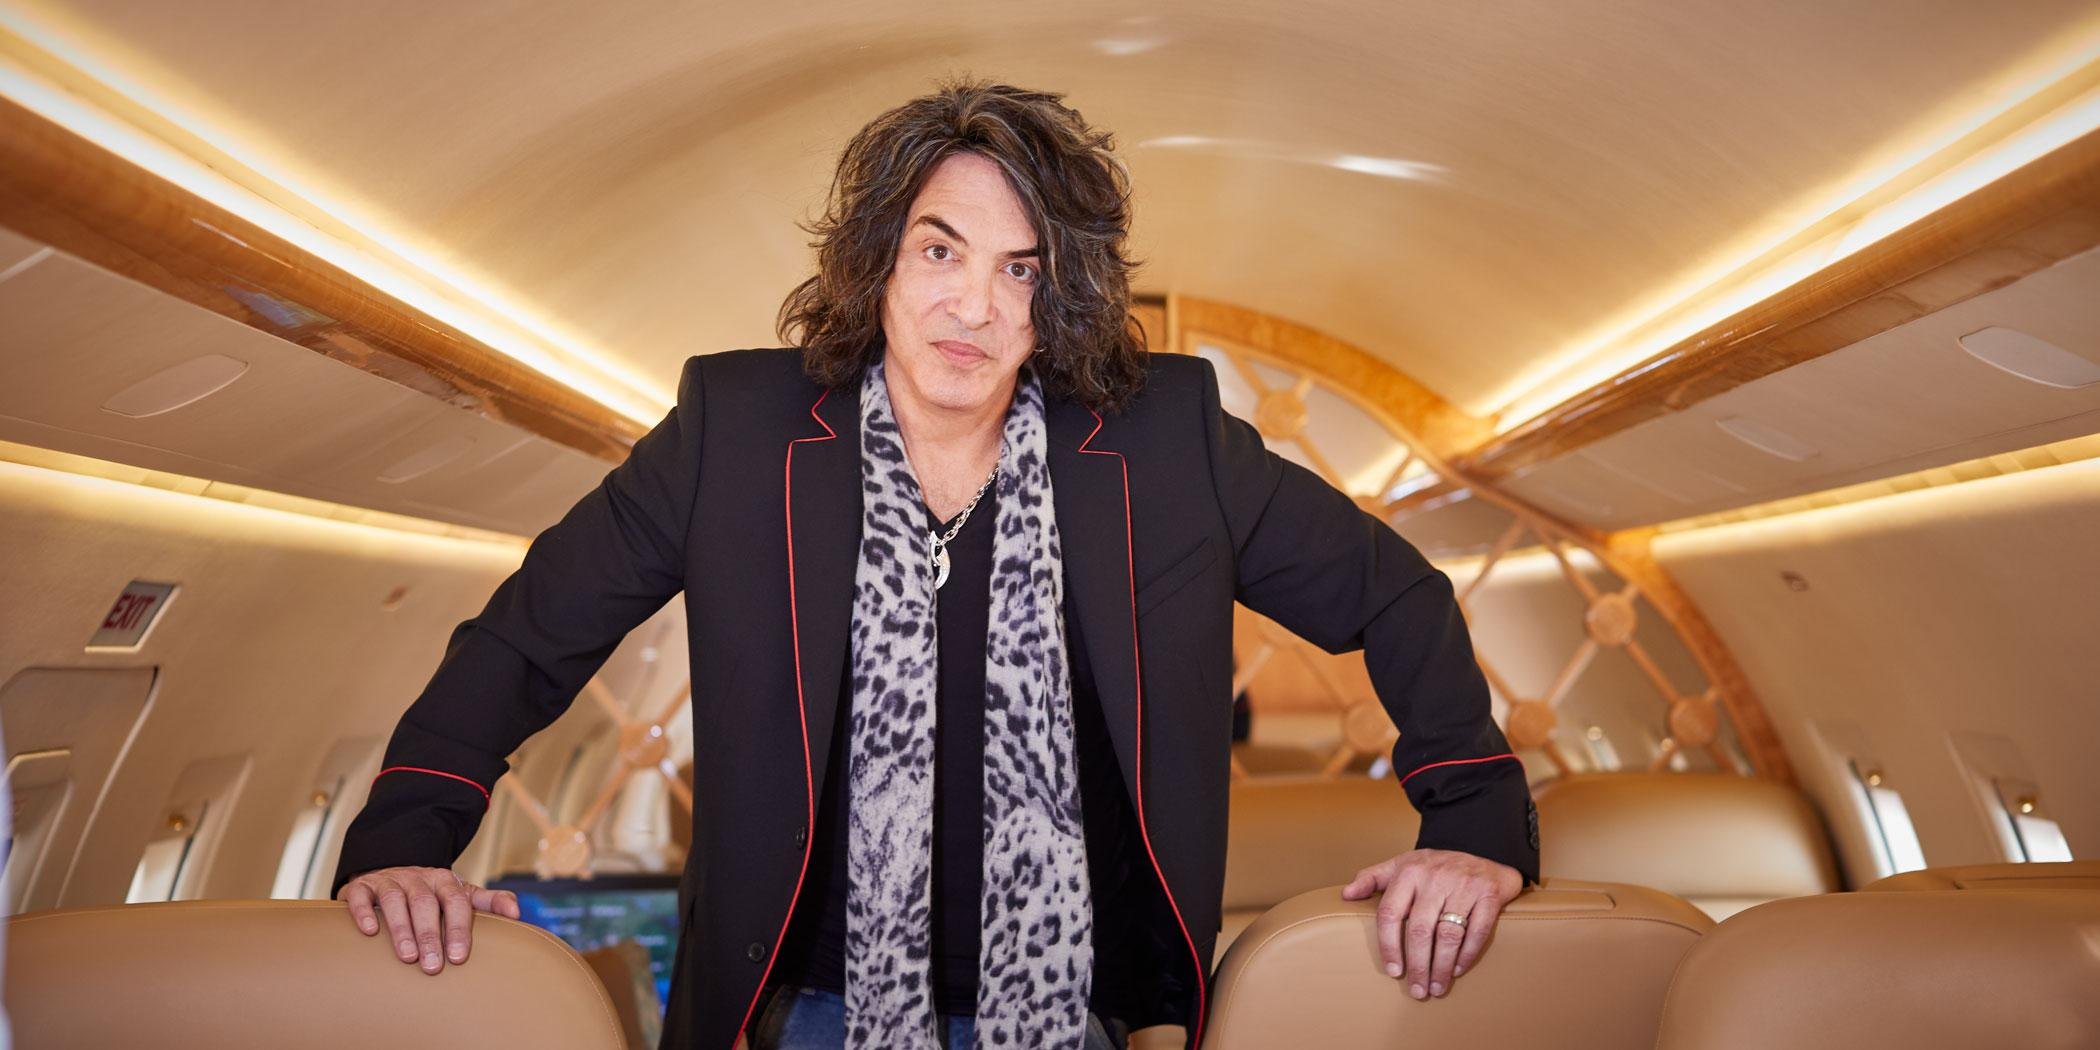 Paul Stanley, cofounder  of the rock band Kiss and a 2018 interviewee